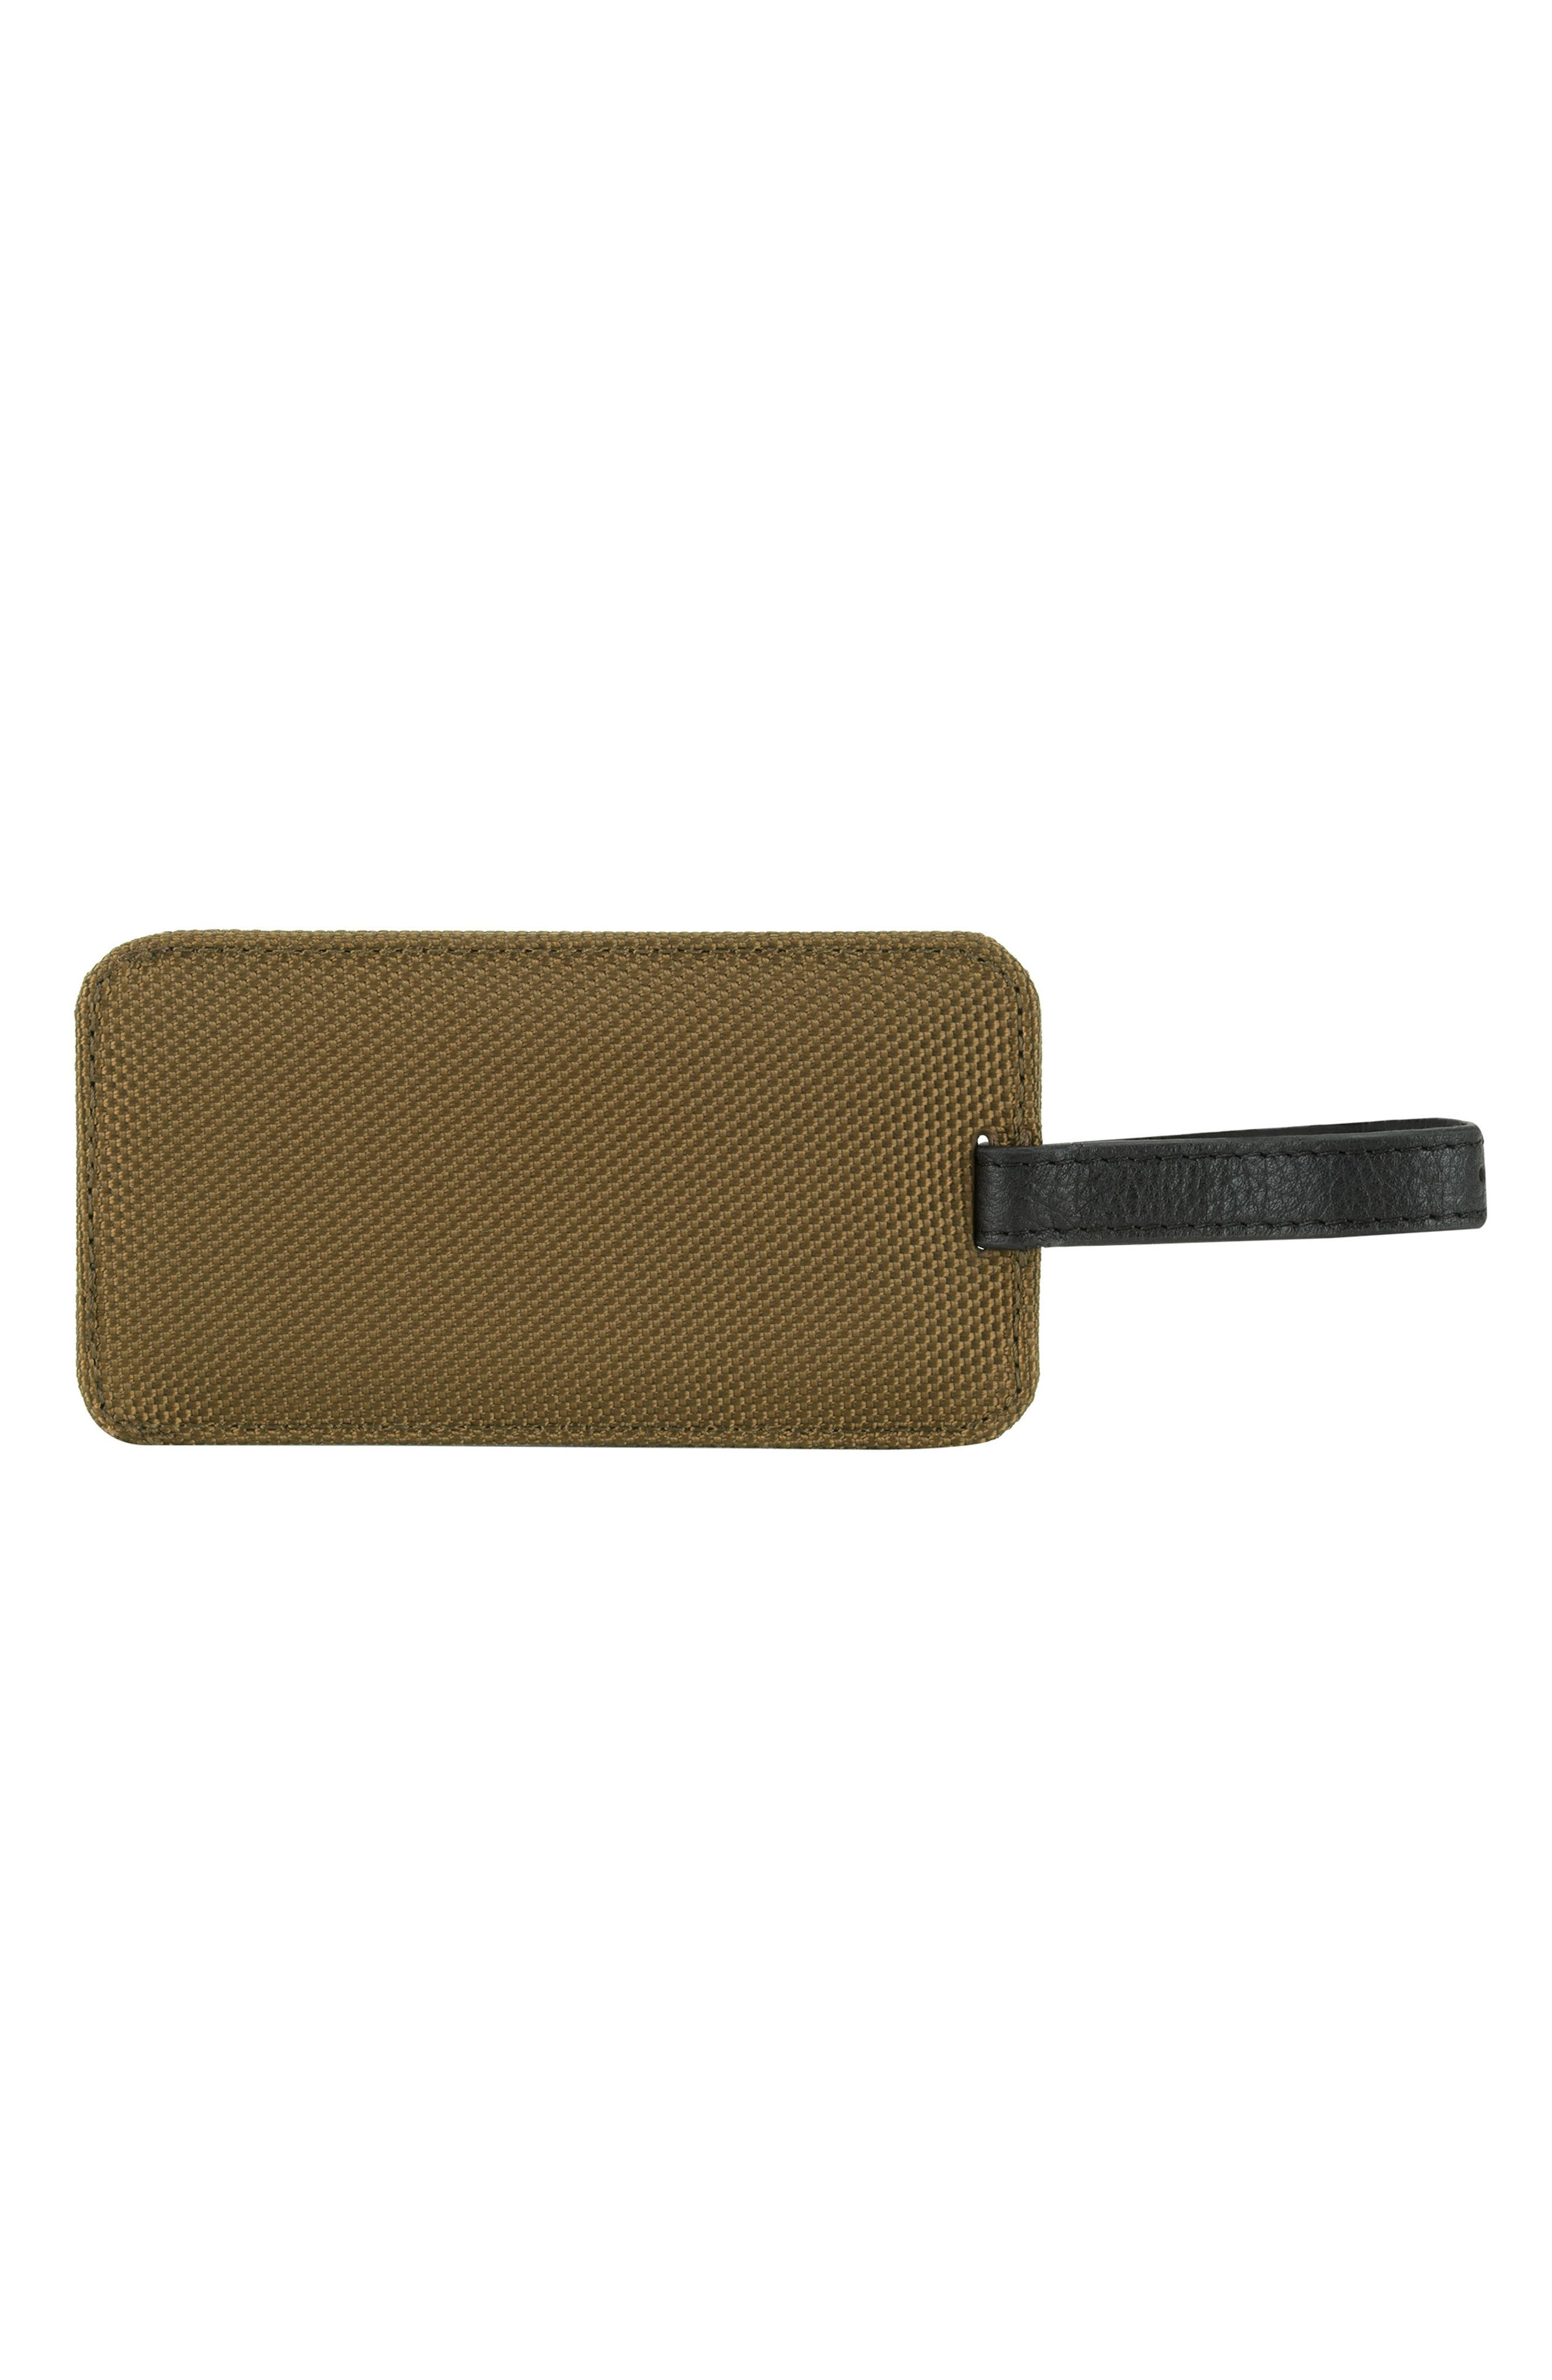 Incase Designs Luggage Tag